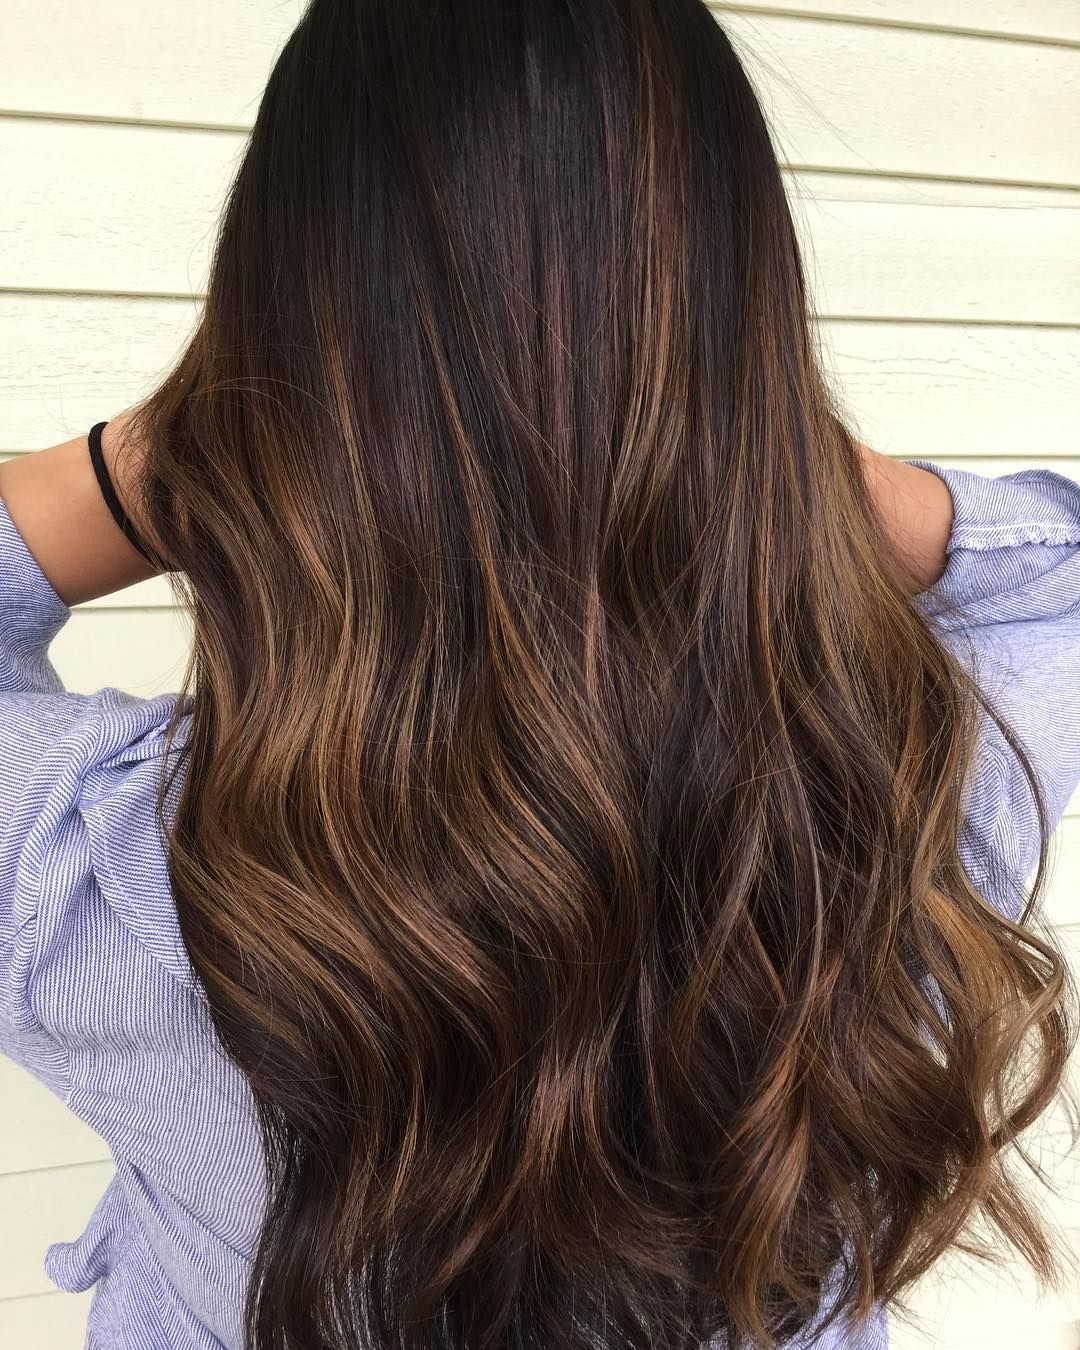 Image result for Sun-kissed hair trend